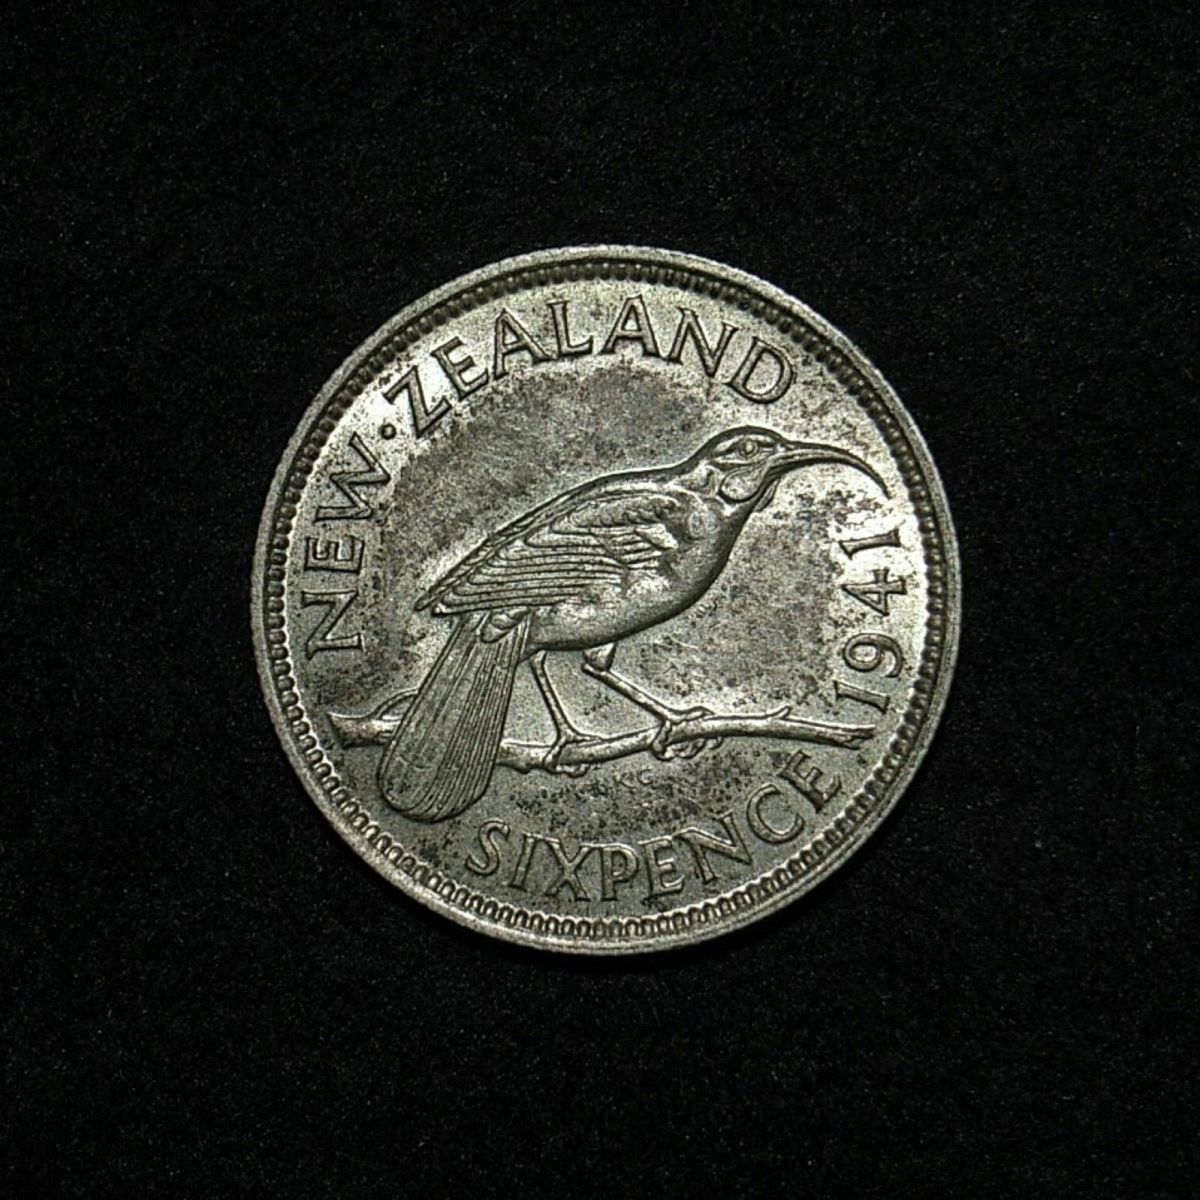 NZ sixpence 1941 reverse close up, new light angle showing detail on the coin